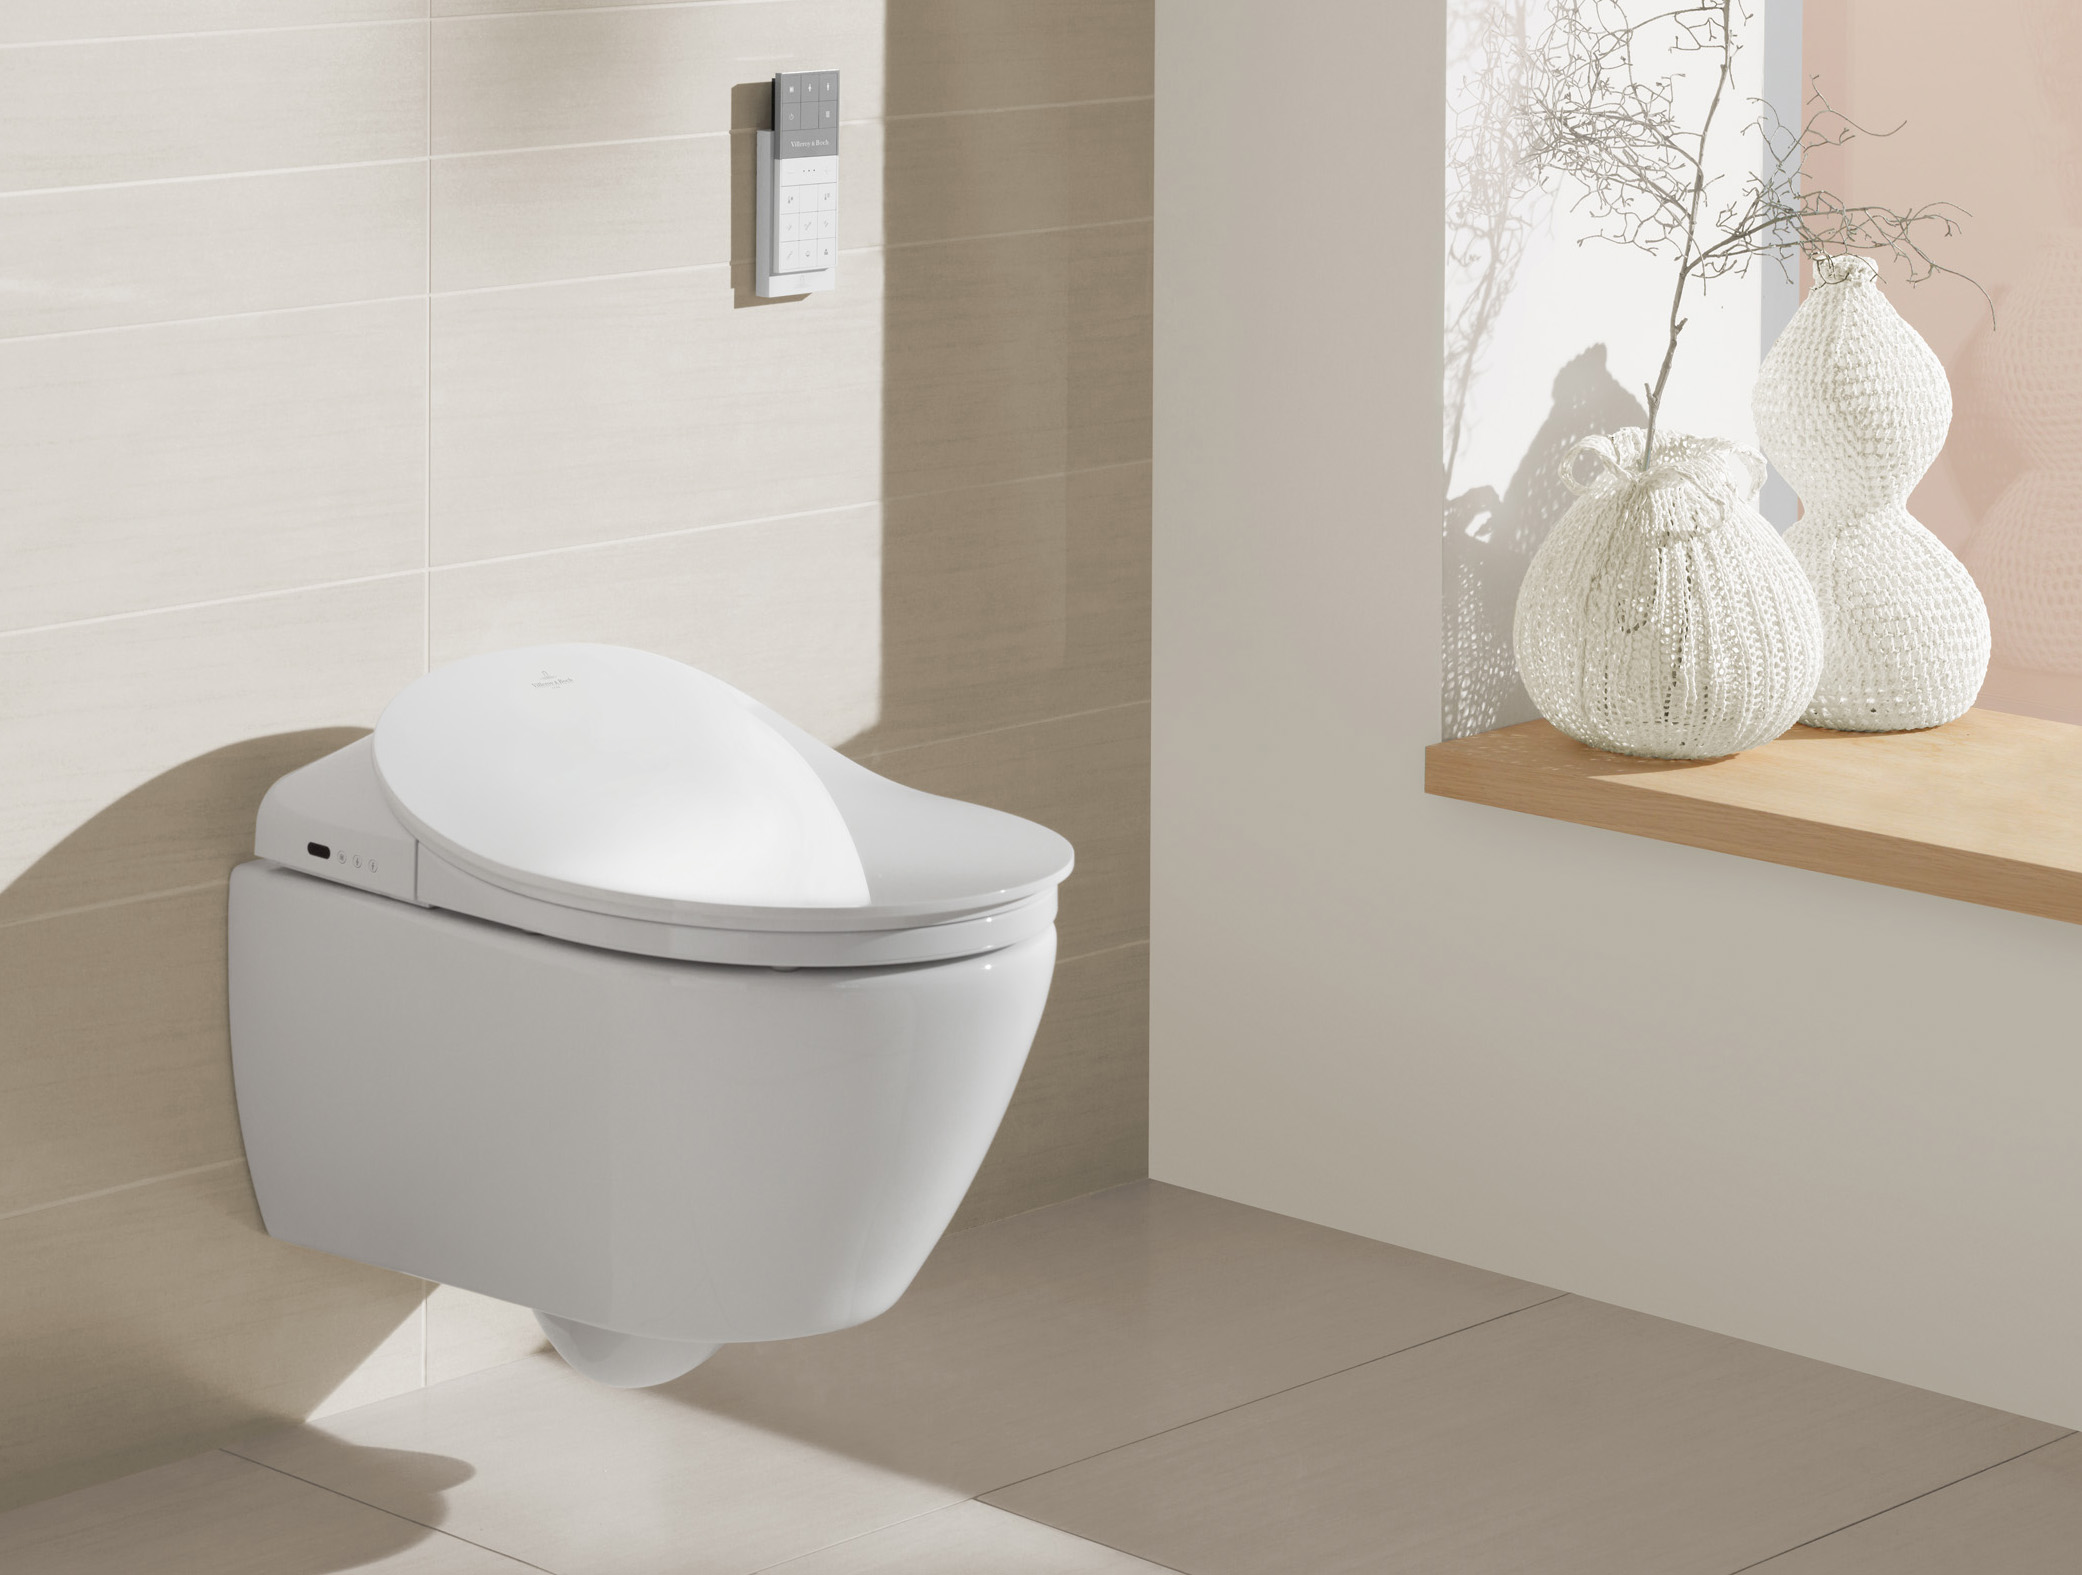 ViClean electronic Bidet by Debiasi sandri for Villeroy and Boch